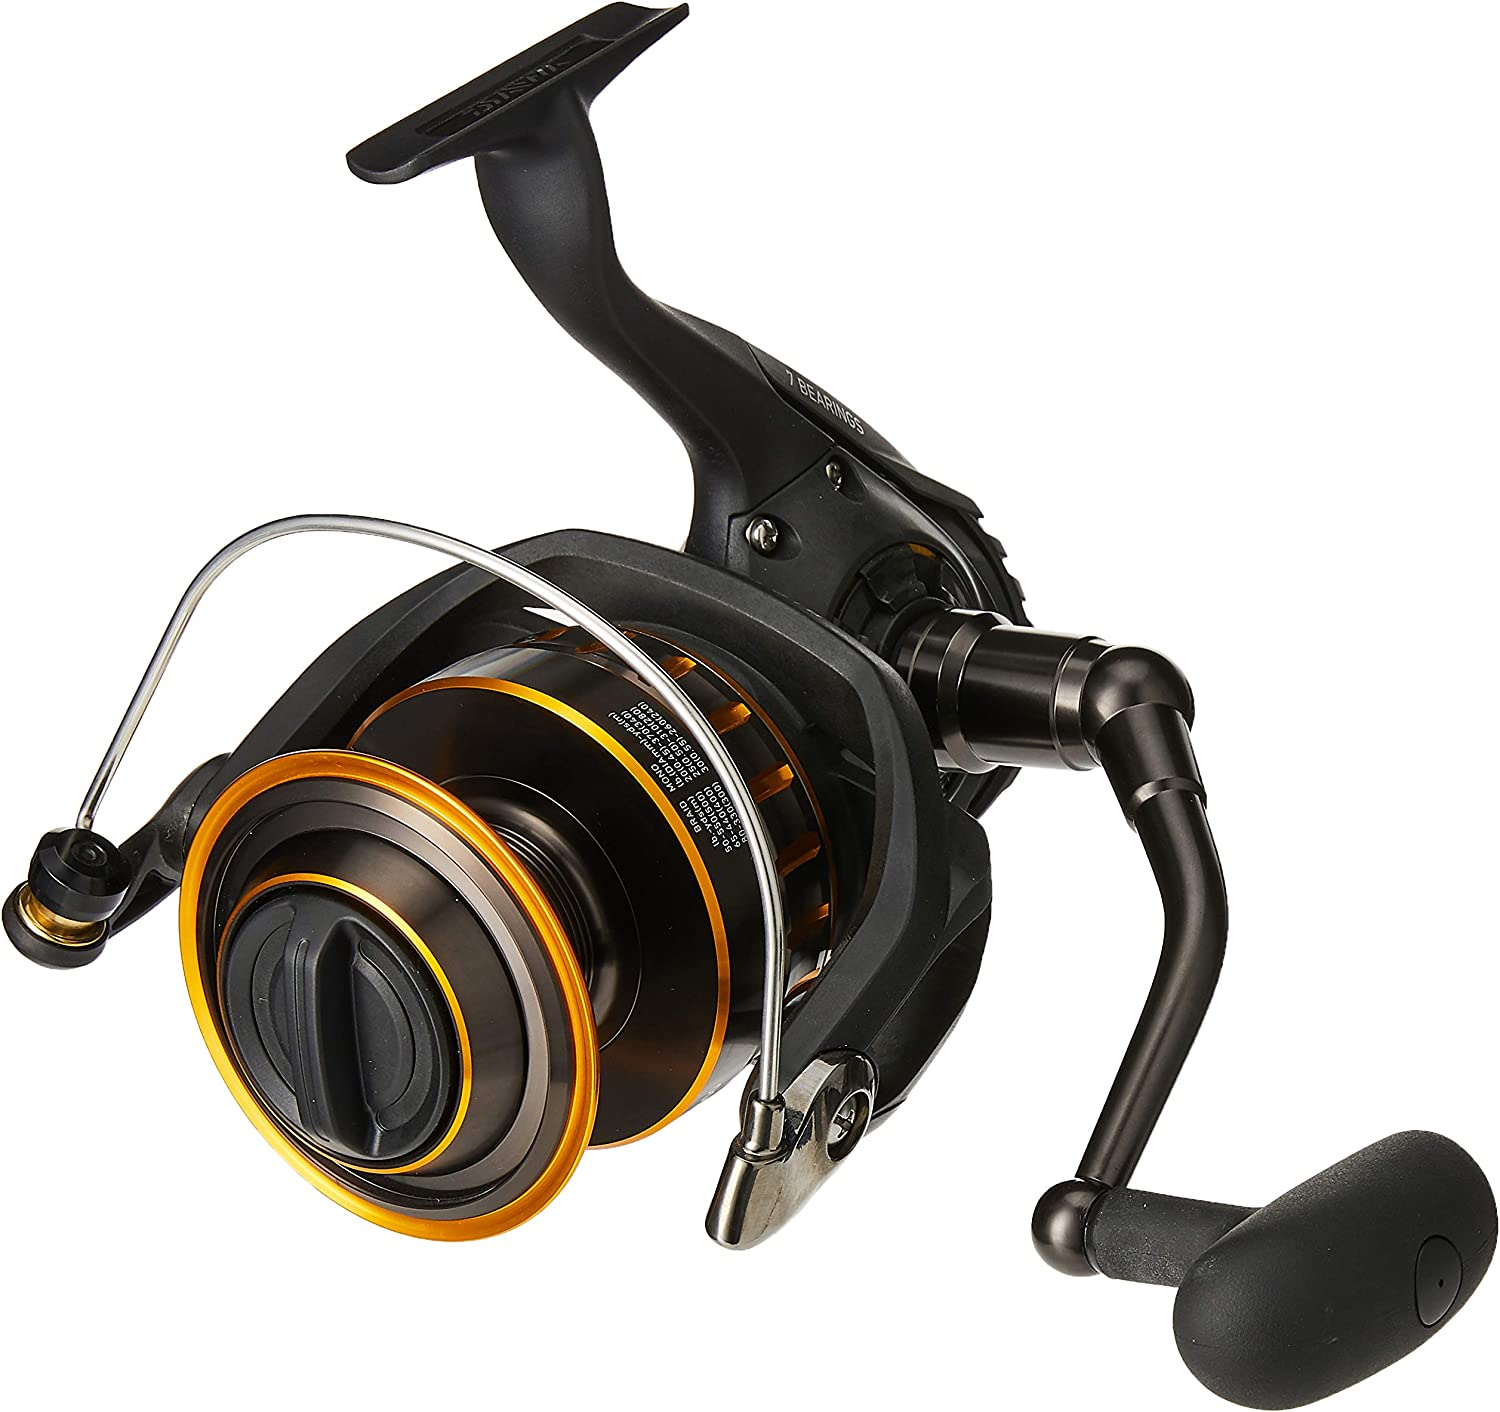 best musky reel: Daiwa BG Spinning Reel